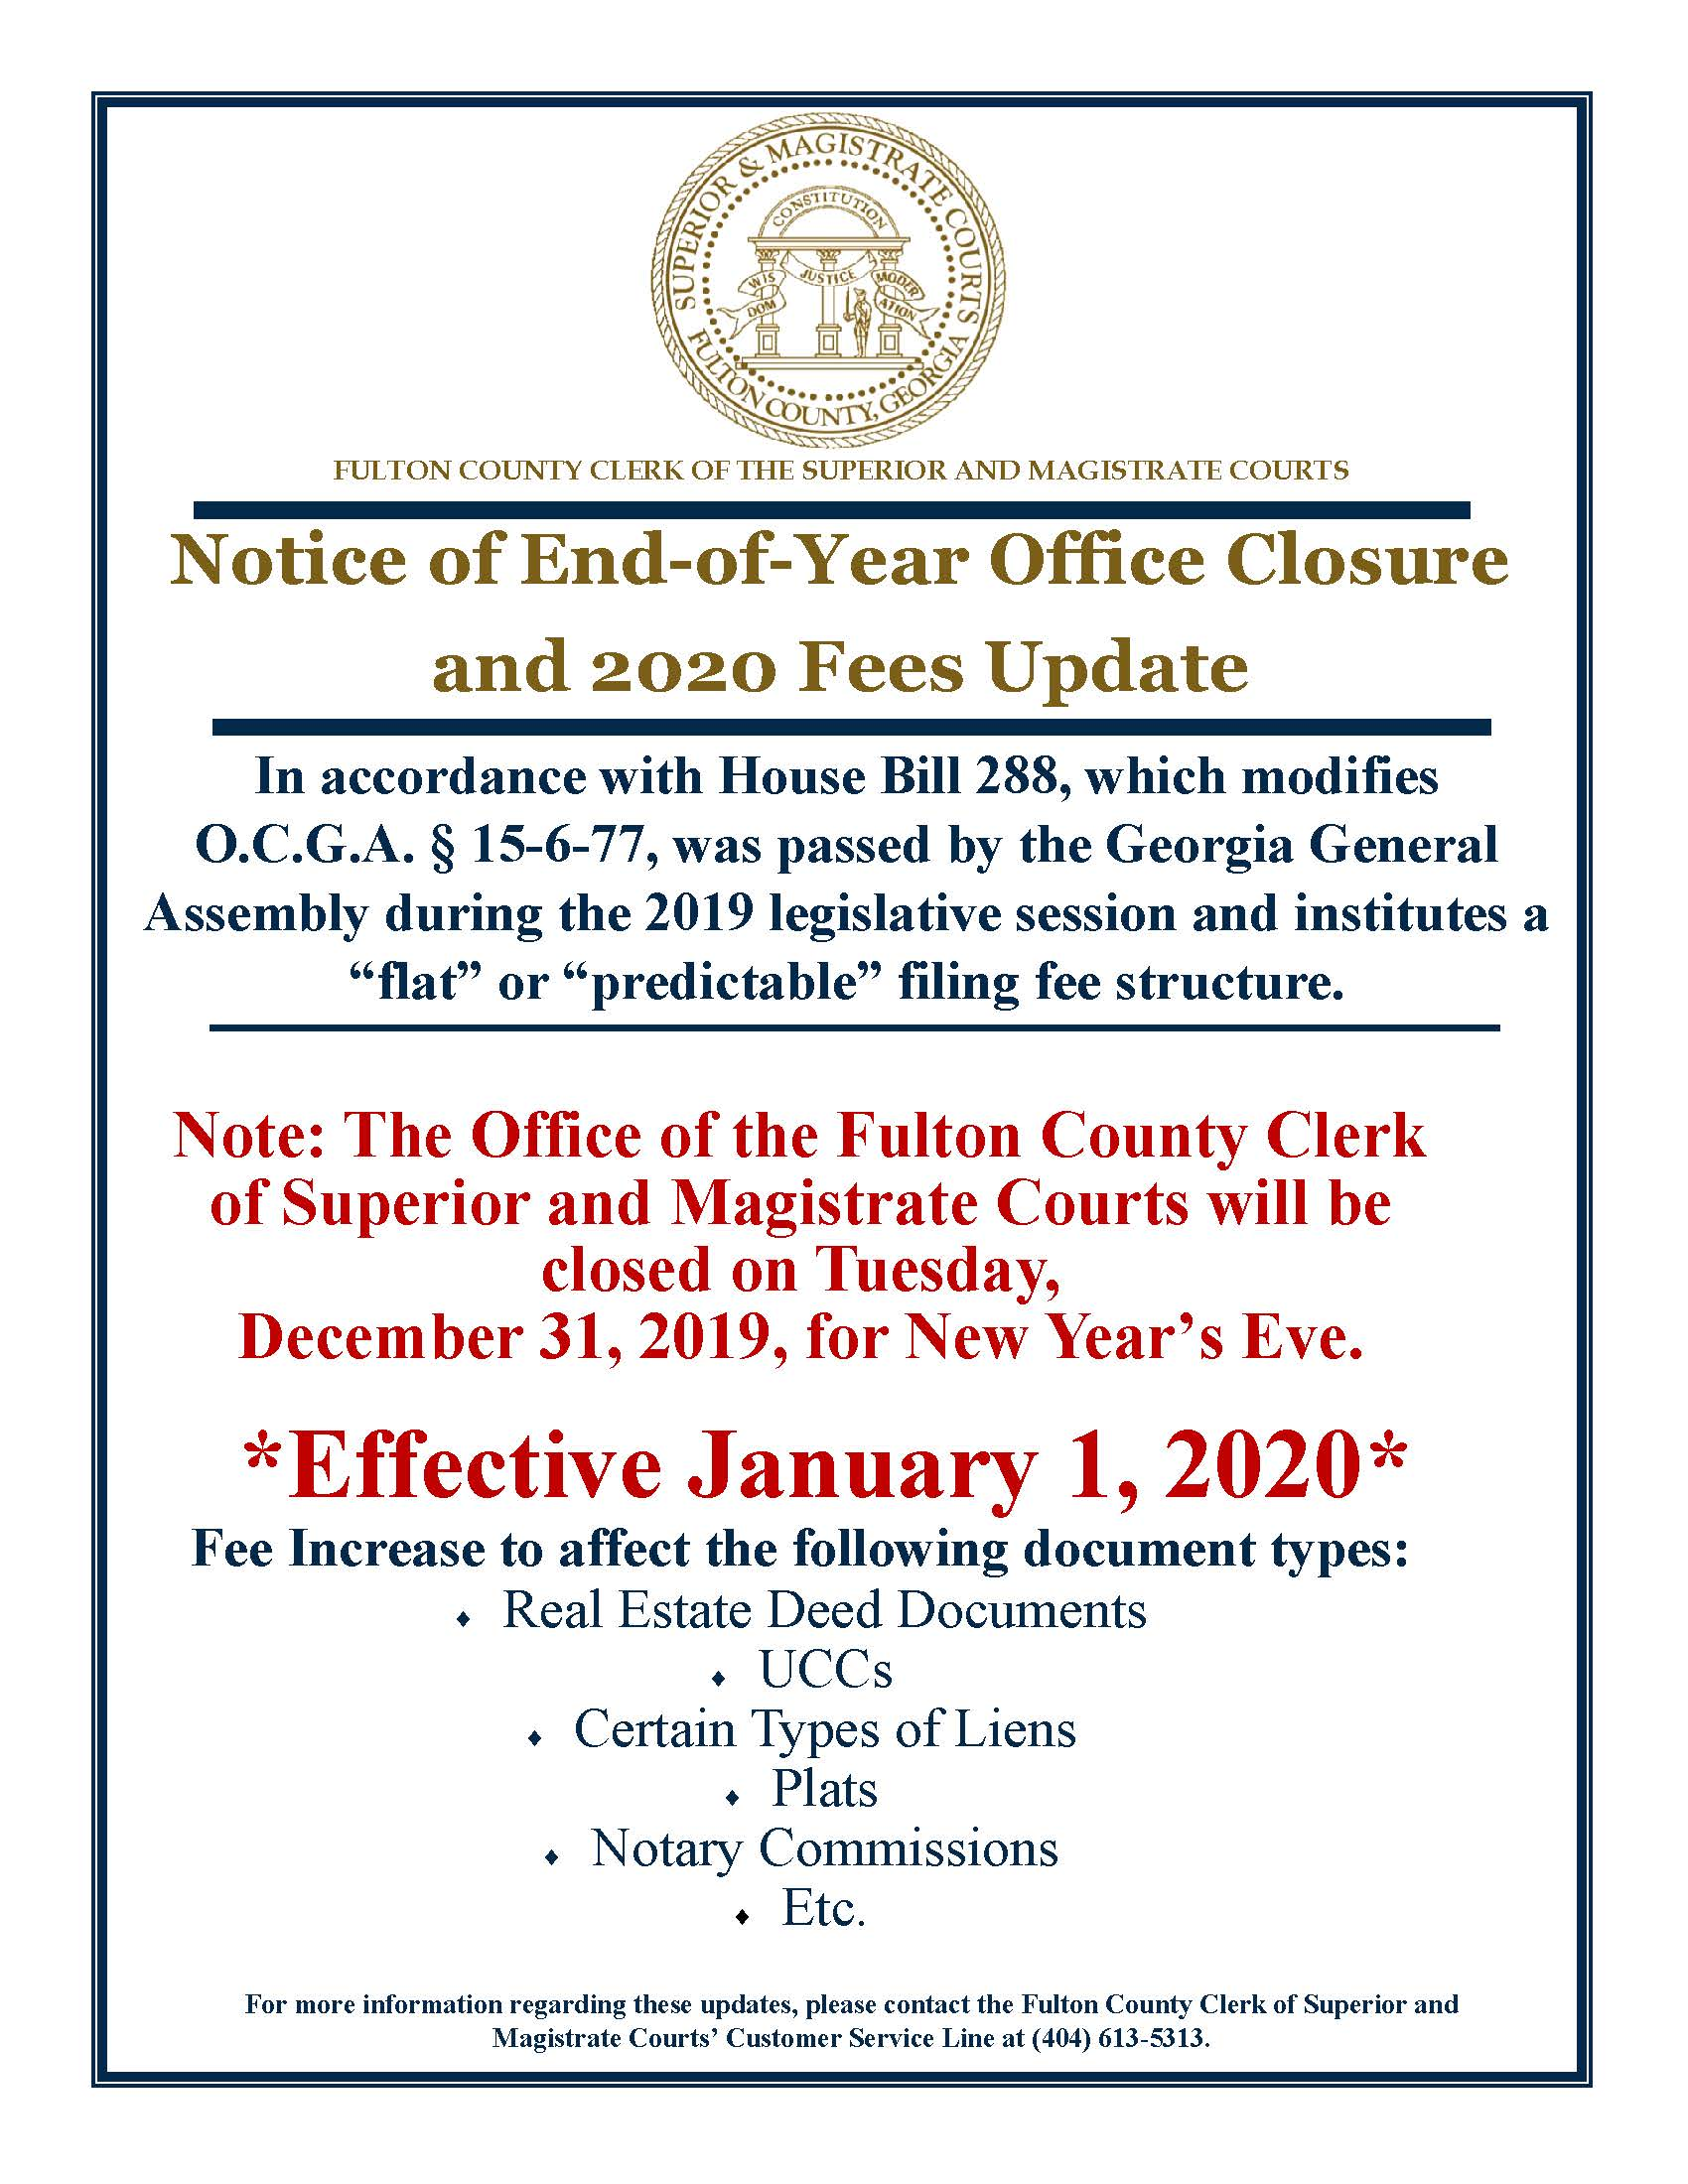 Notice of Office Closure and 2020 Fee Update